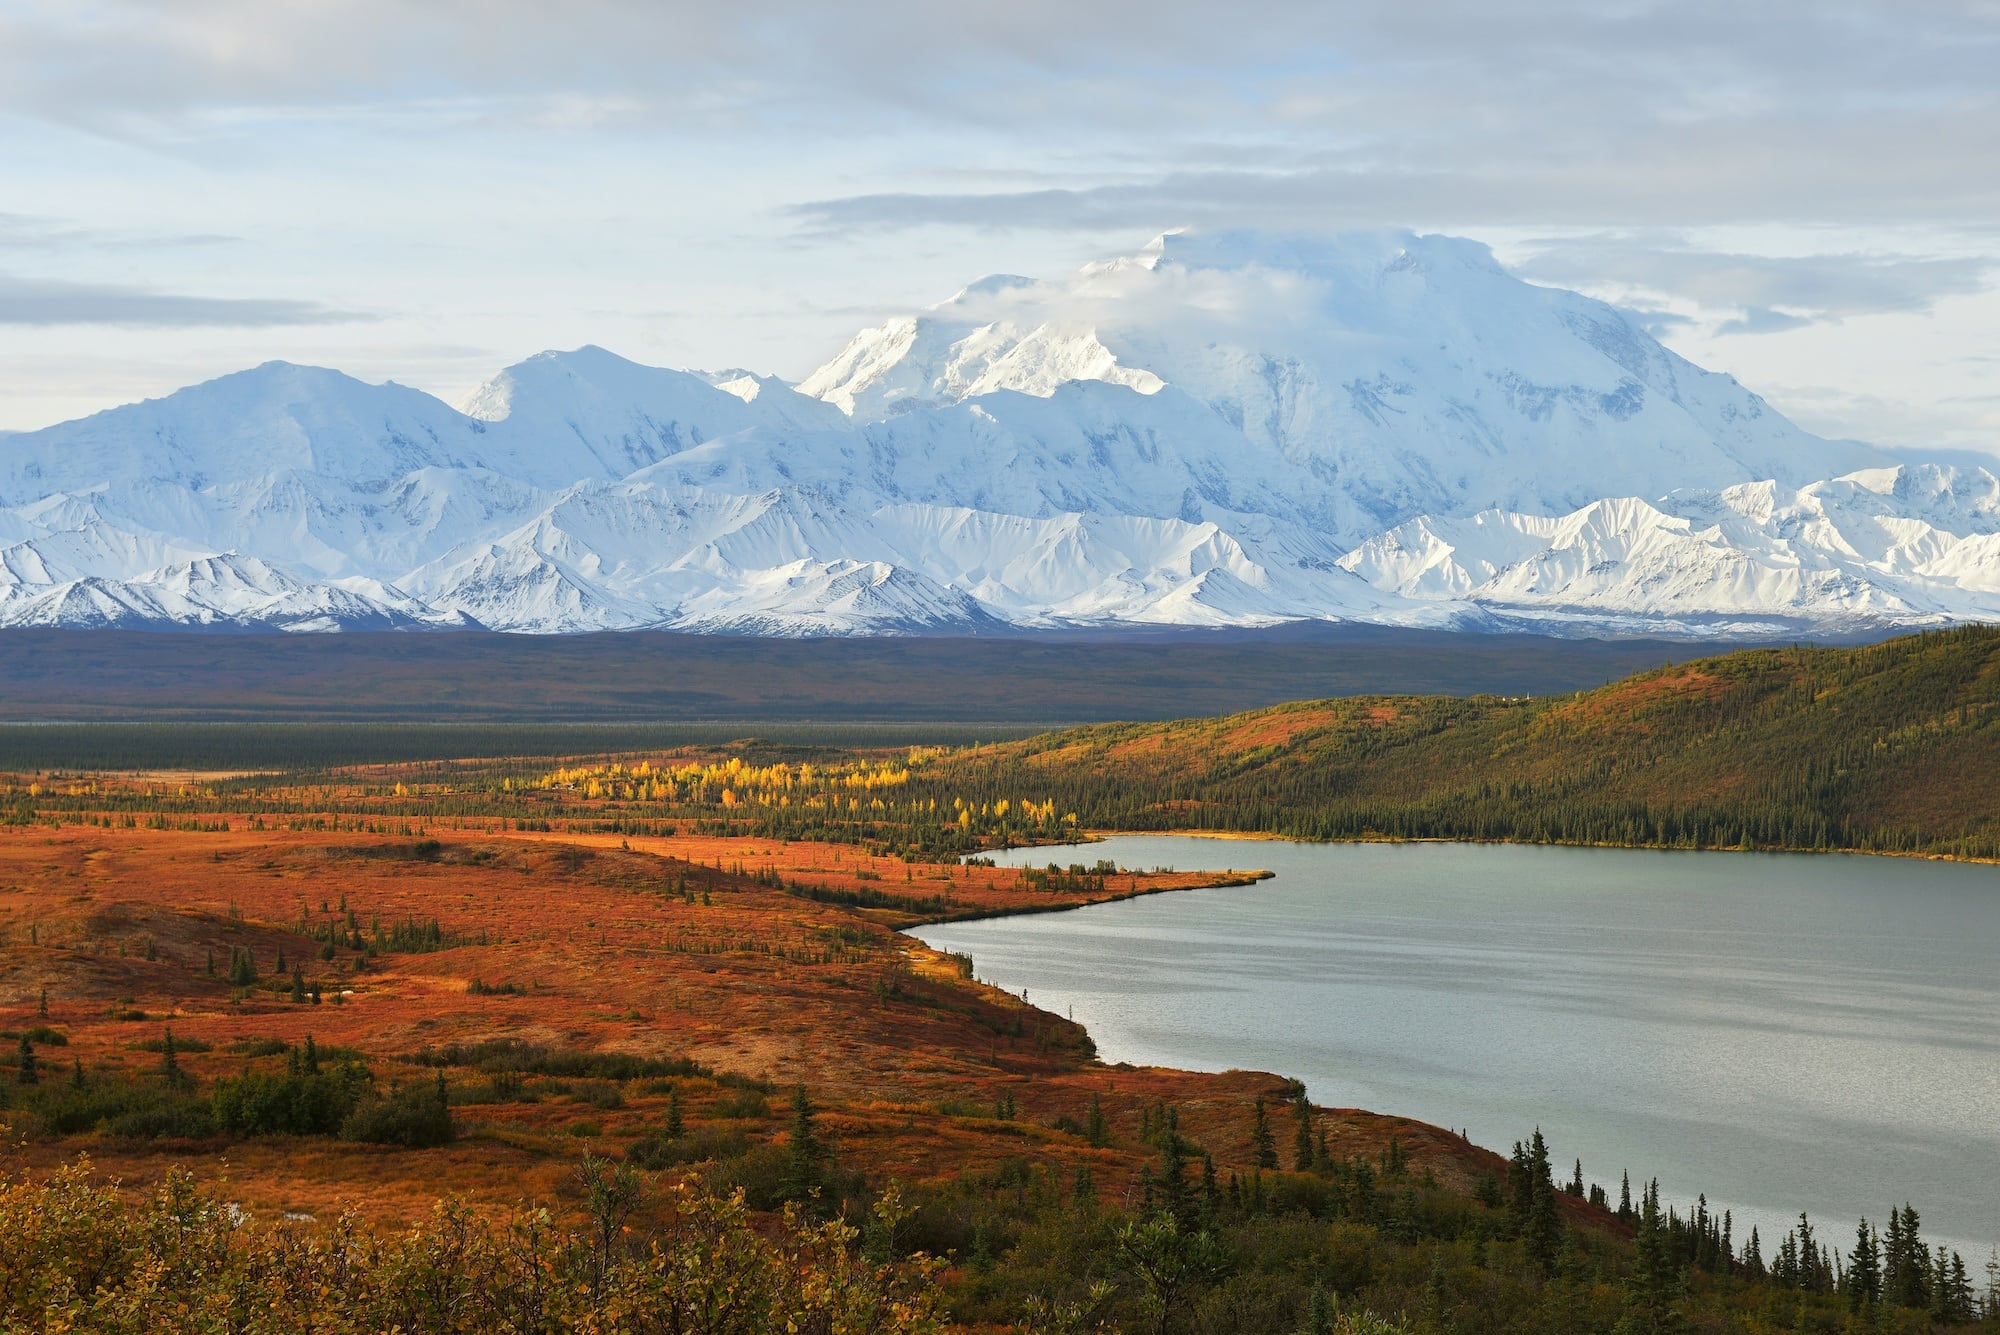 Denali National Park // Discover the best National Parks to visit in fall for the best leaf-peeping vacation. Get tips on best hikes, scenic drives, and more.